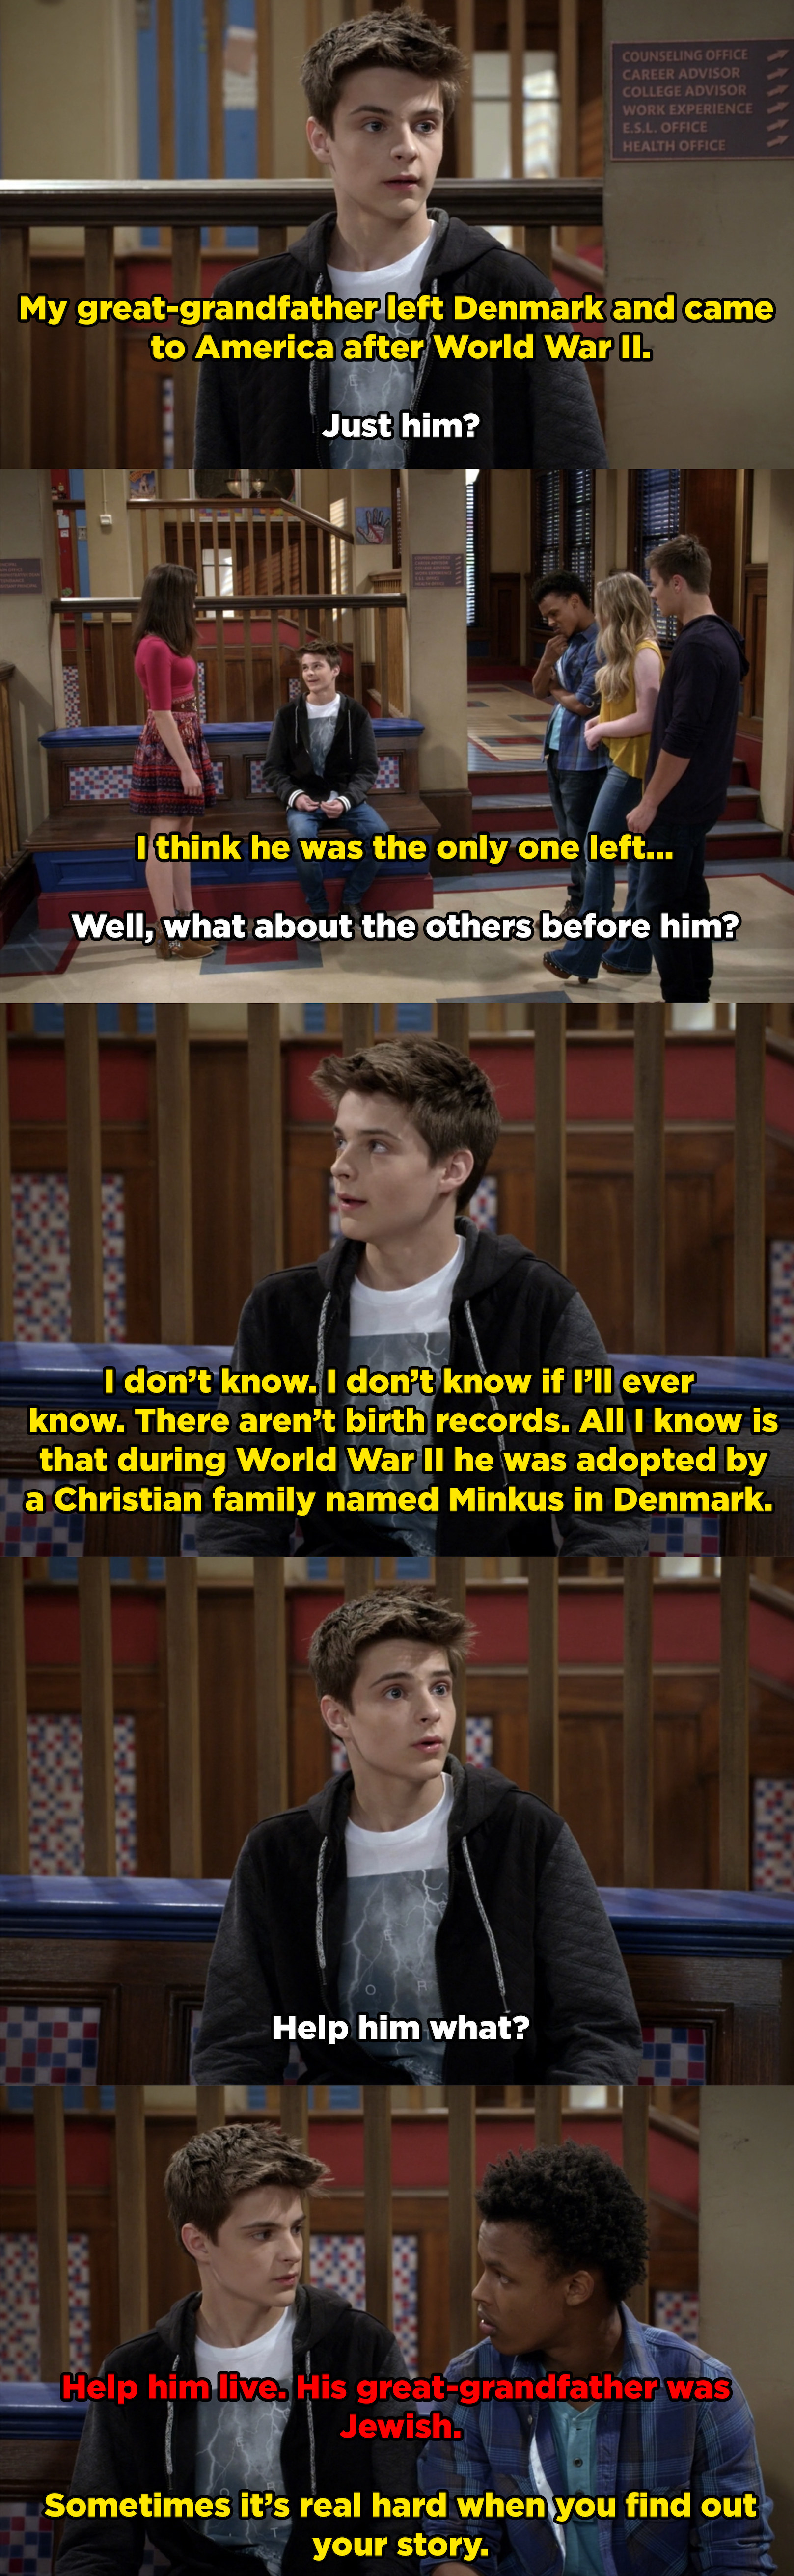 Farkle explains to his friends that his great-grandfather was adopted after World War II because the rest of his ancestors were Jewish and killed during the Holocaust.